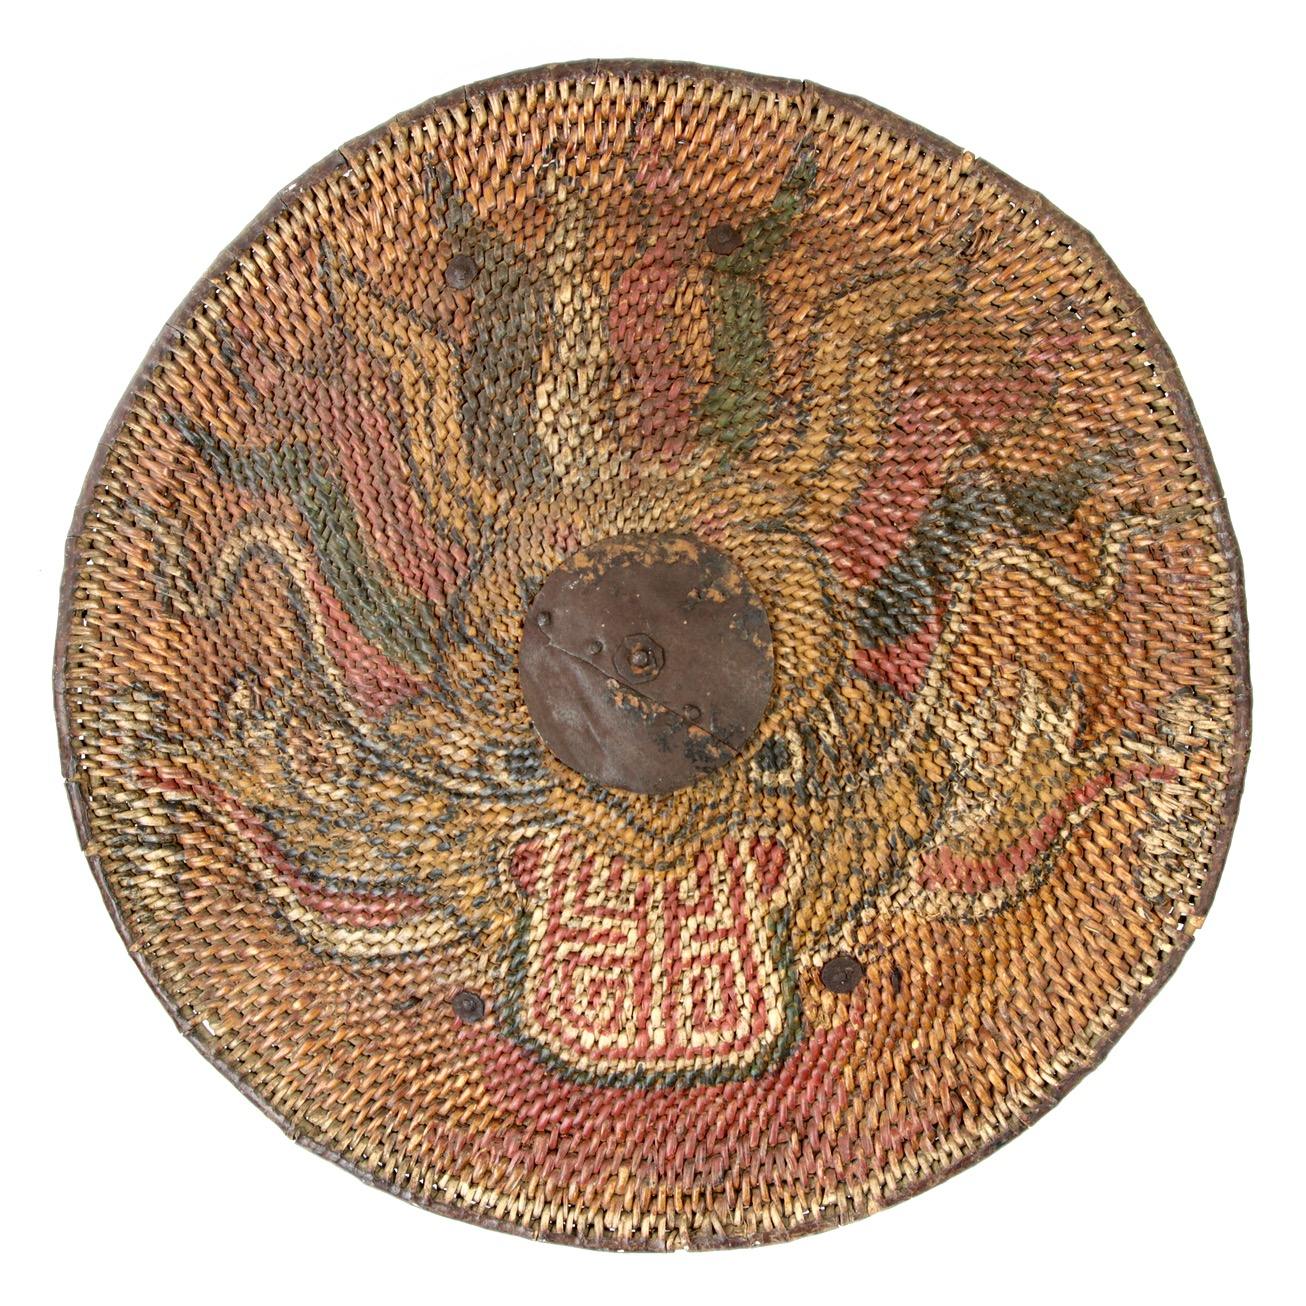 Vietnamese rattan shield